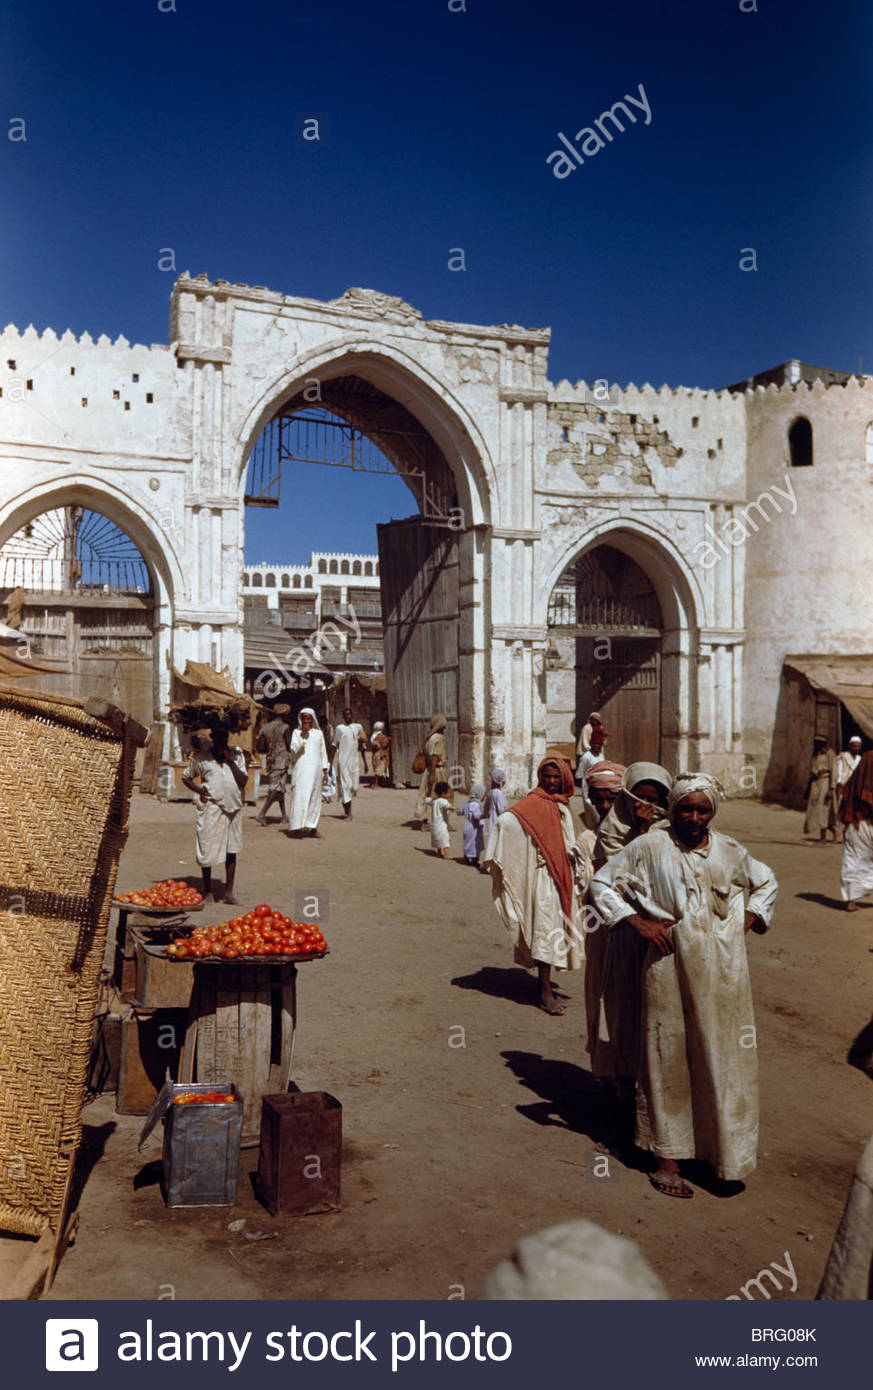 Men stand near a tomato vendor's display outside a city gate. Stock Photo